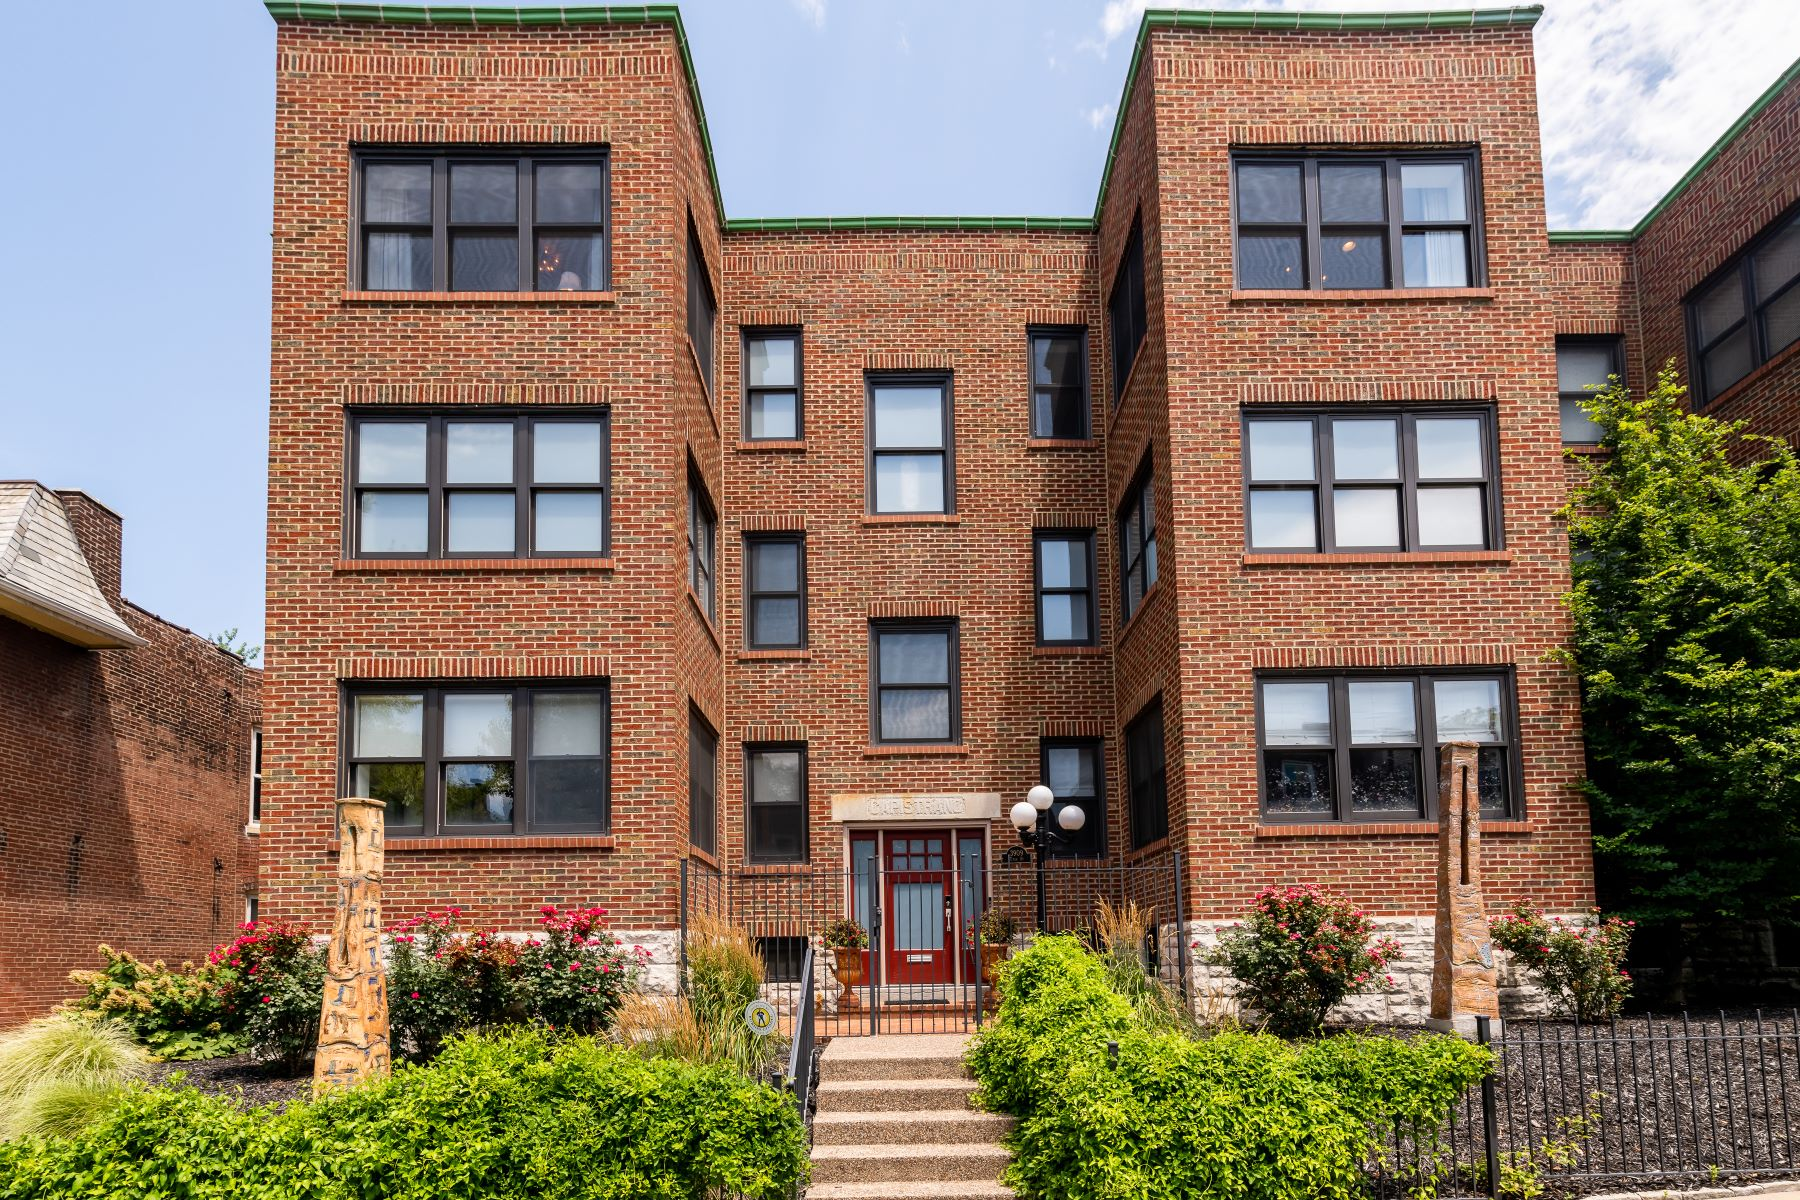 townhouses for Sale at Four-Story Luxury Townhome in Mint Condition 3909 Utah Street St. Louis, Missouri 63116 United States